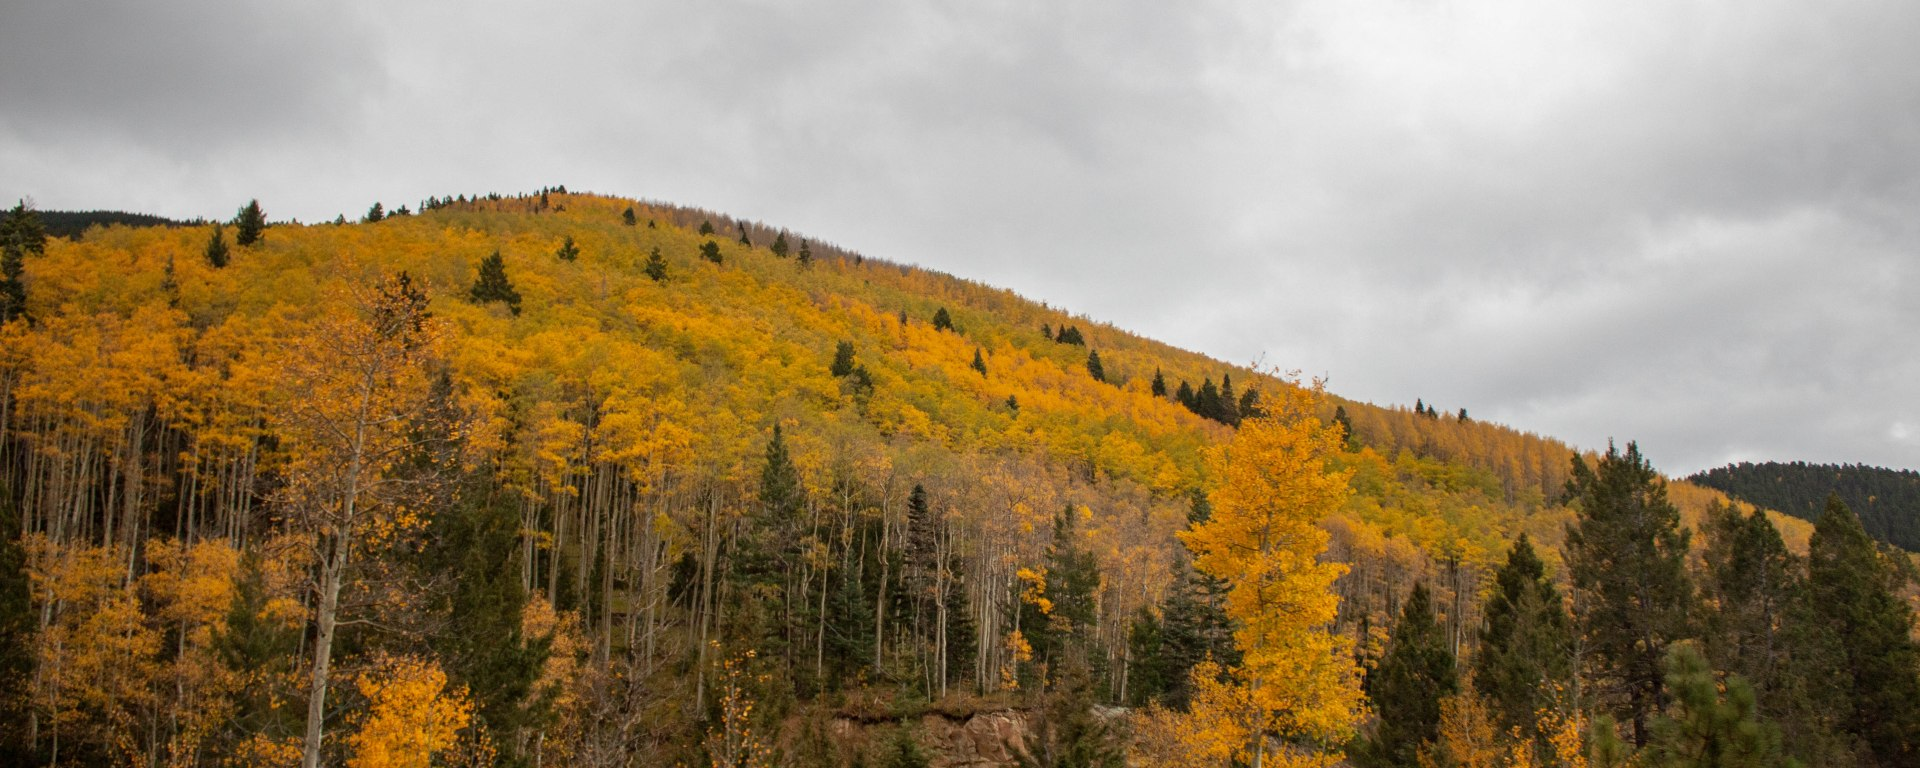 The aspens shown magnificently, even in the gloomy weather.